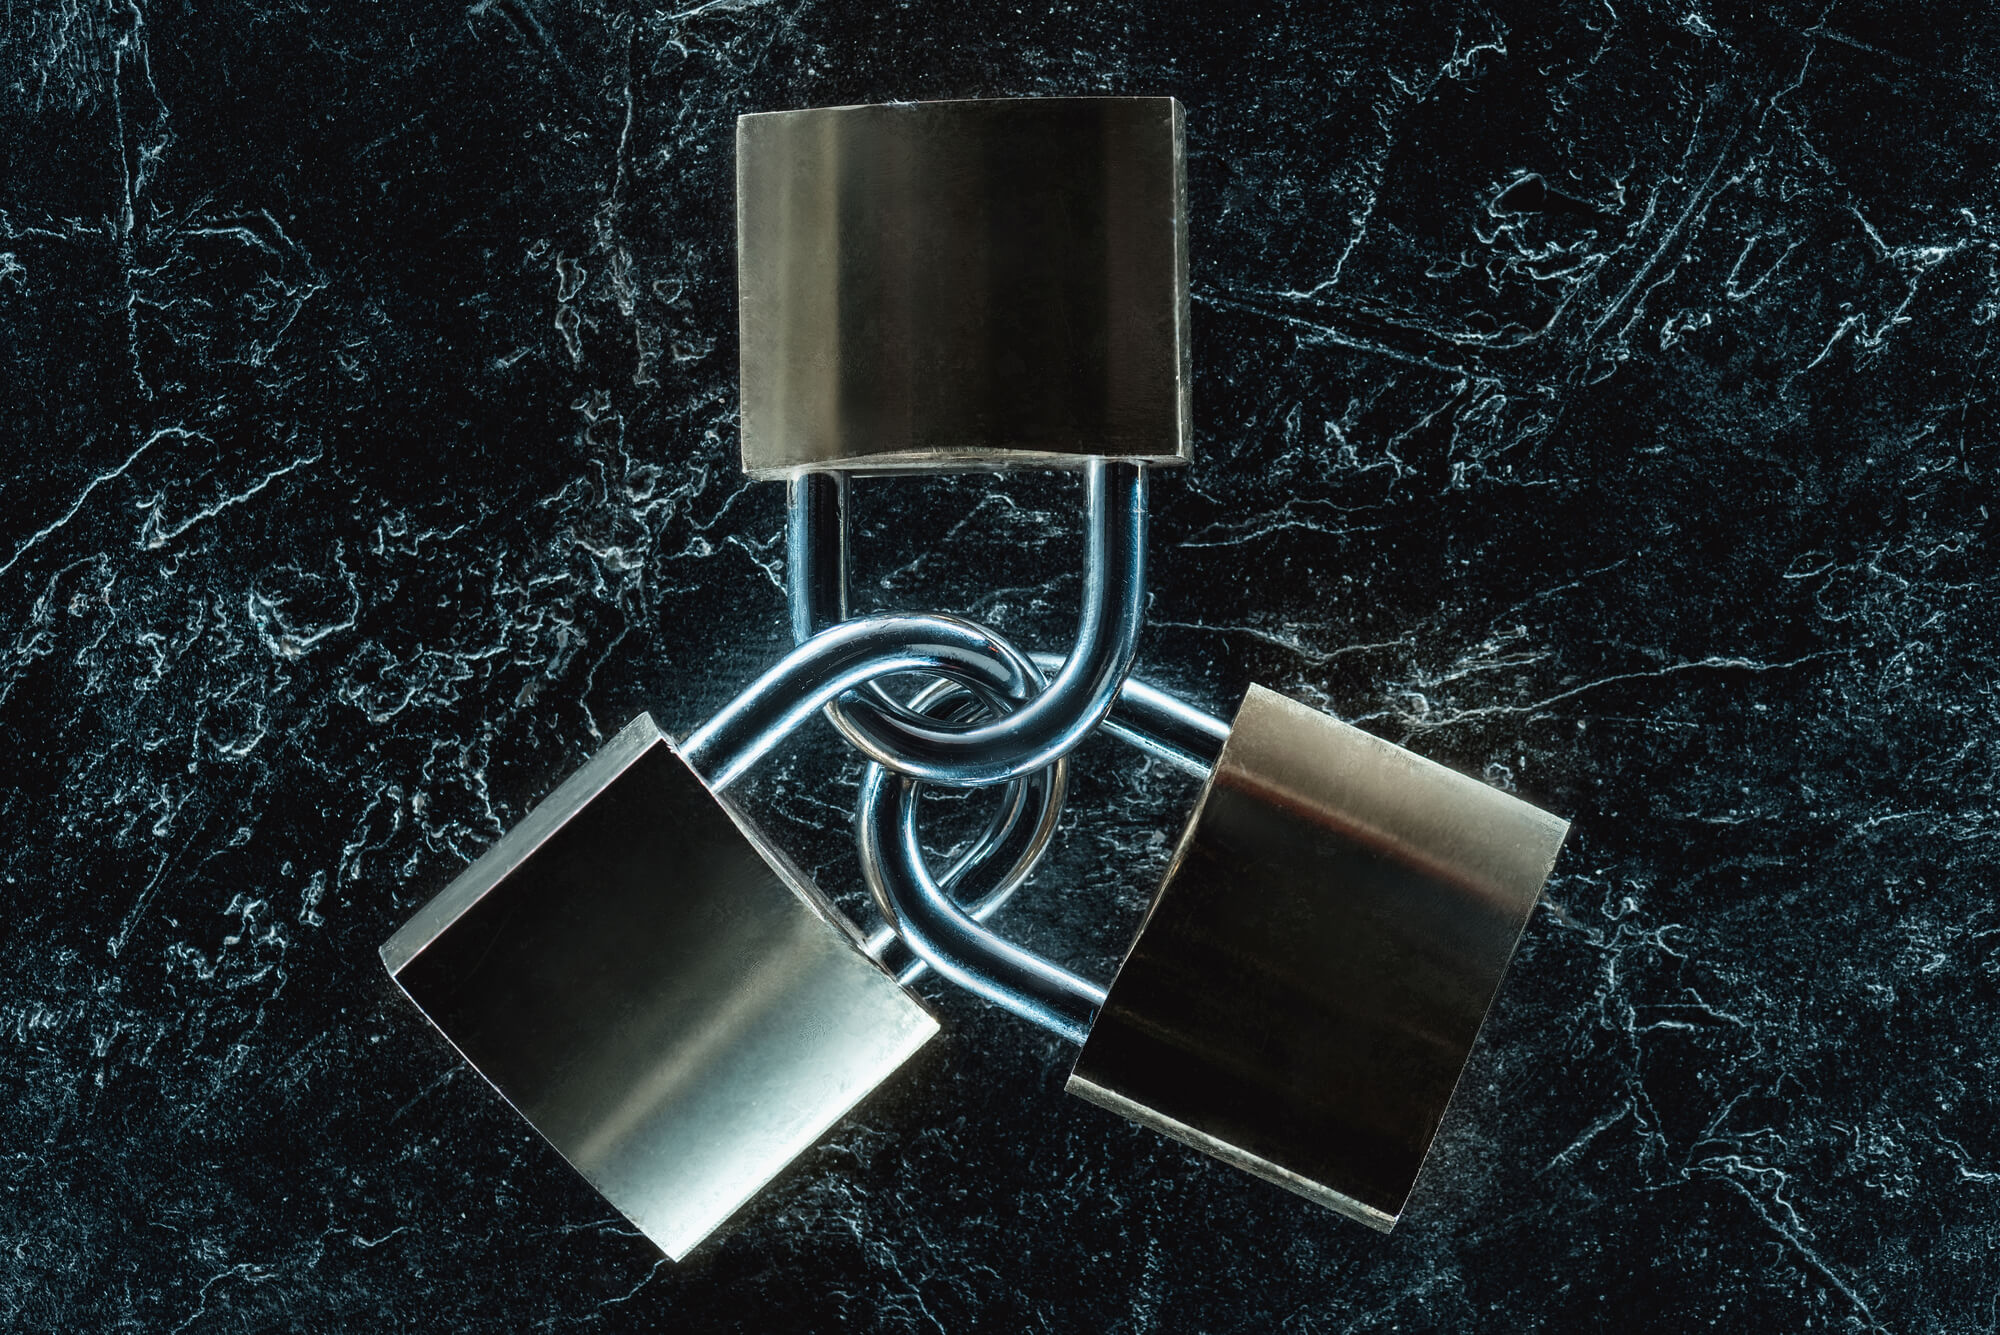 Layered Security is Your Network's Best Defense